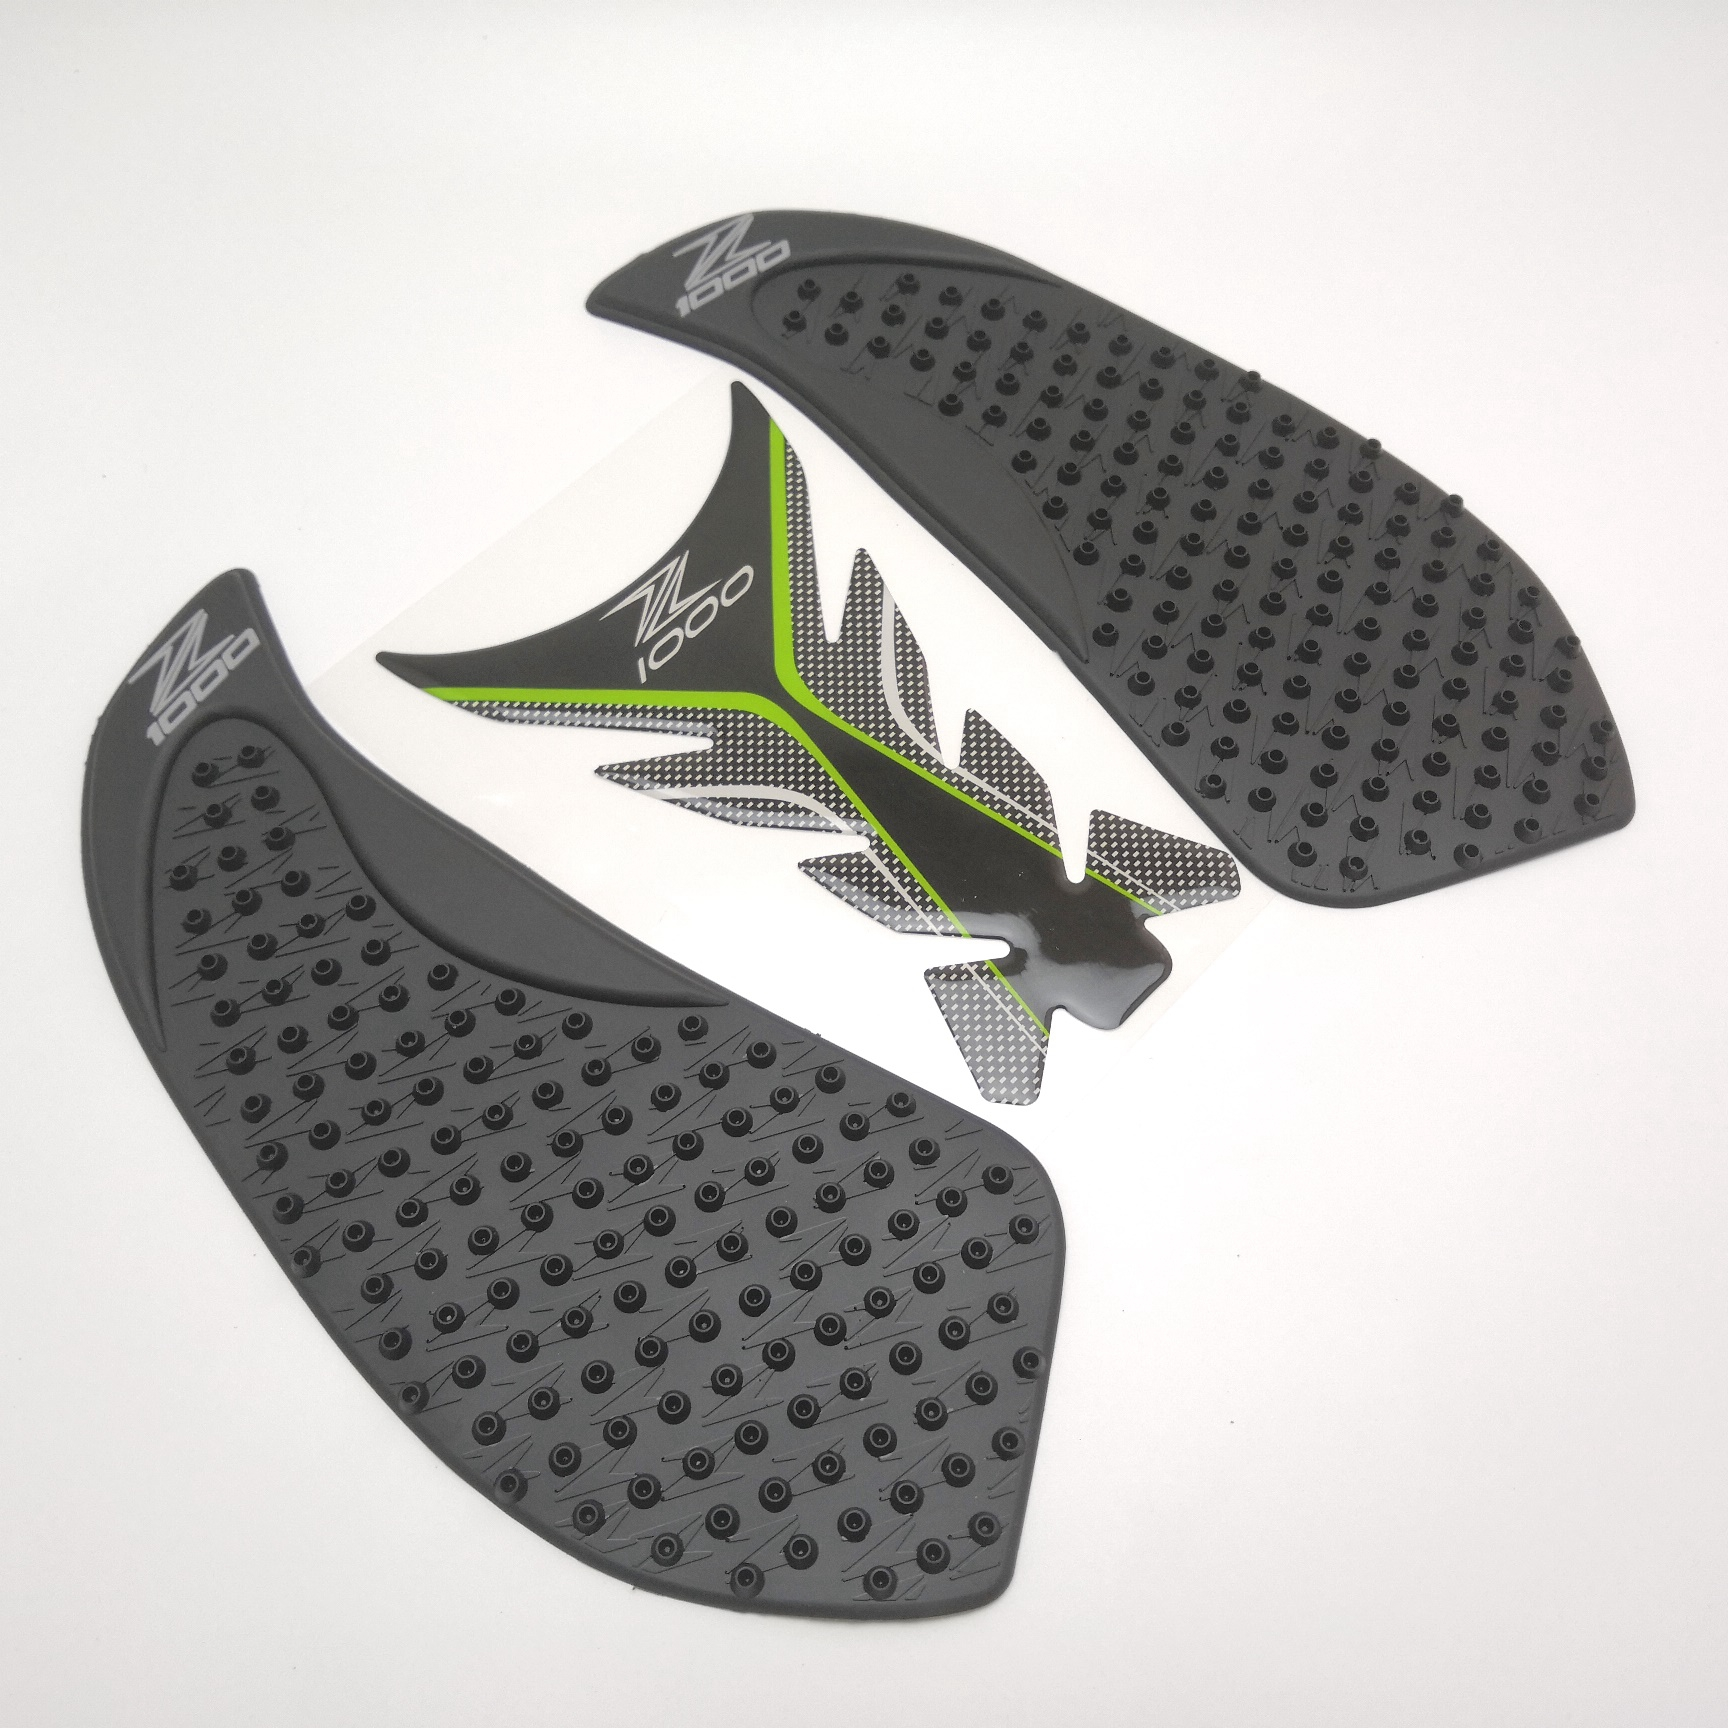 Center Tank Pad + Side Gas Knee Grip Traction Pads Protector Stickers For <font><b>Kawasaki</b></font> <font><b>Z1000</b></font> <font><b>2010</b></font> 2011 2012 2013 image